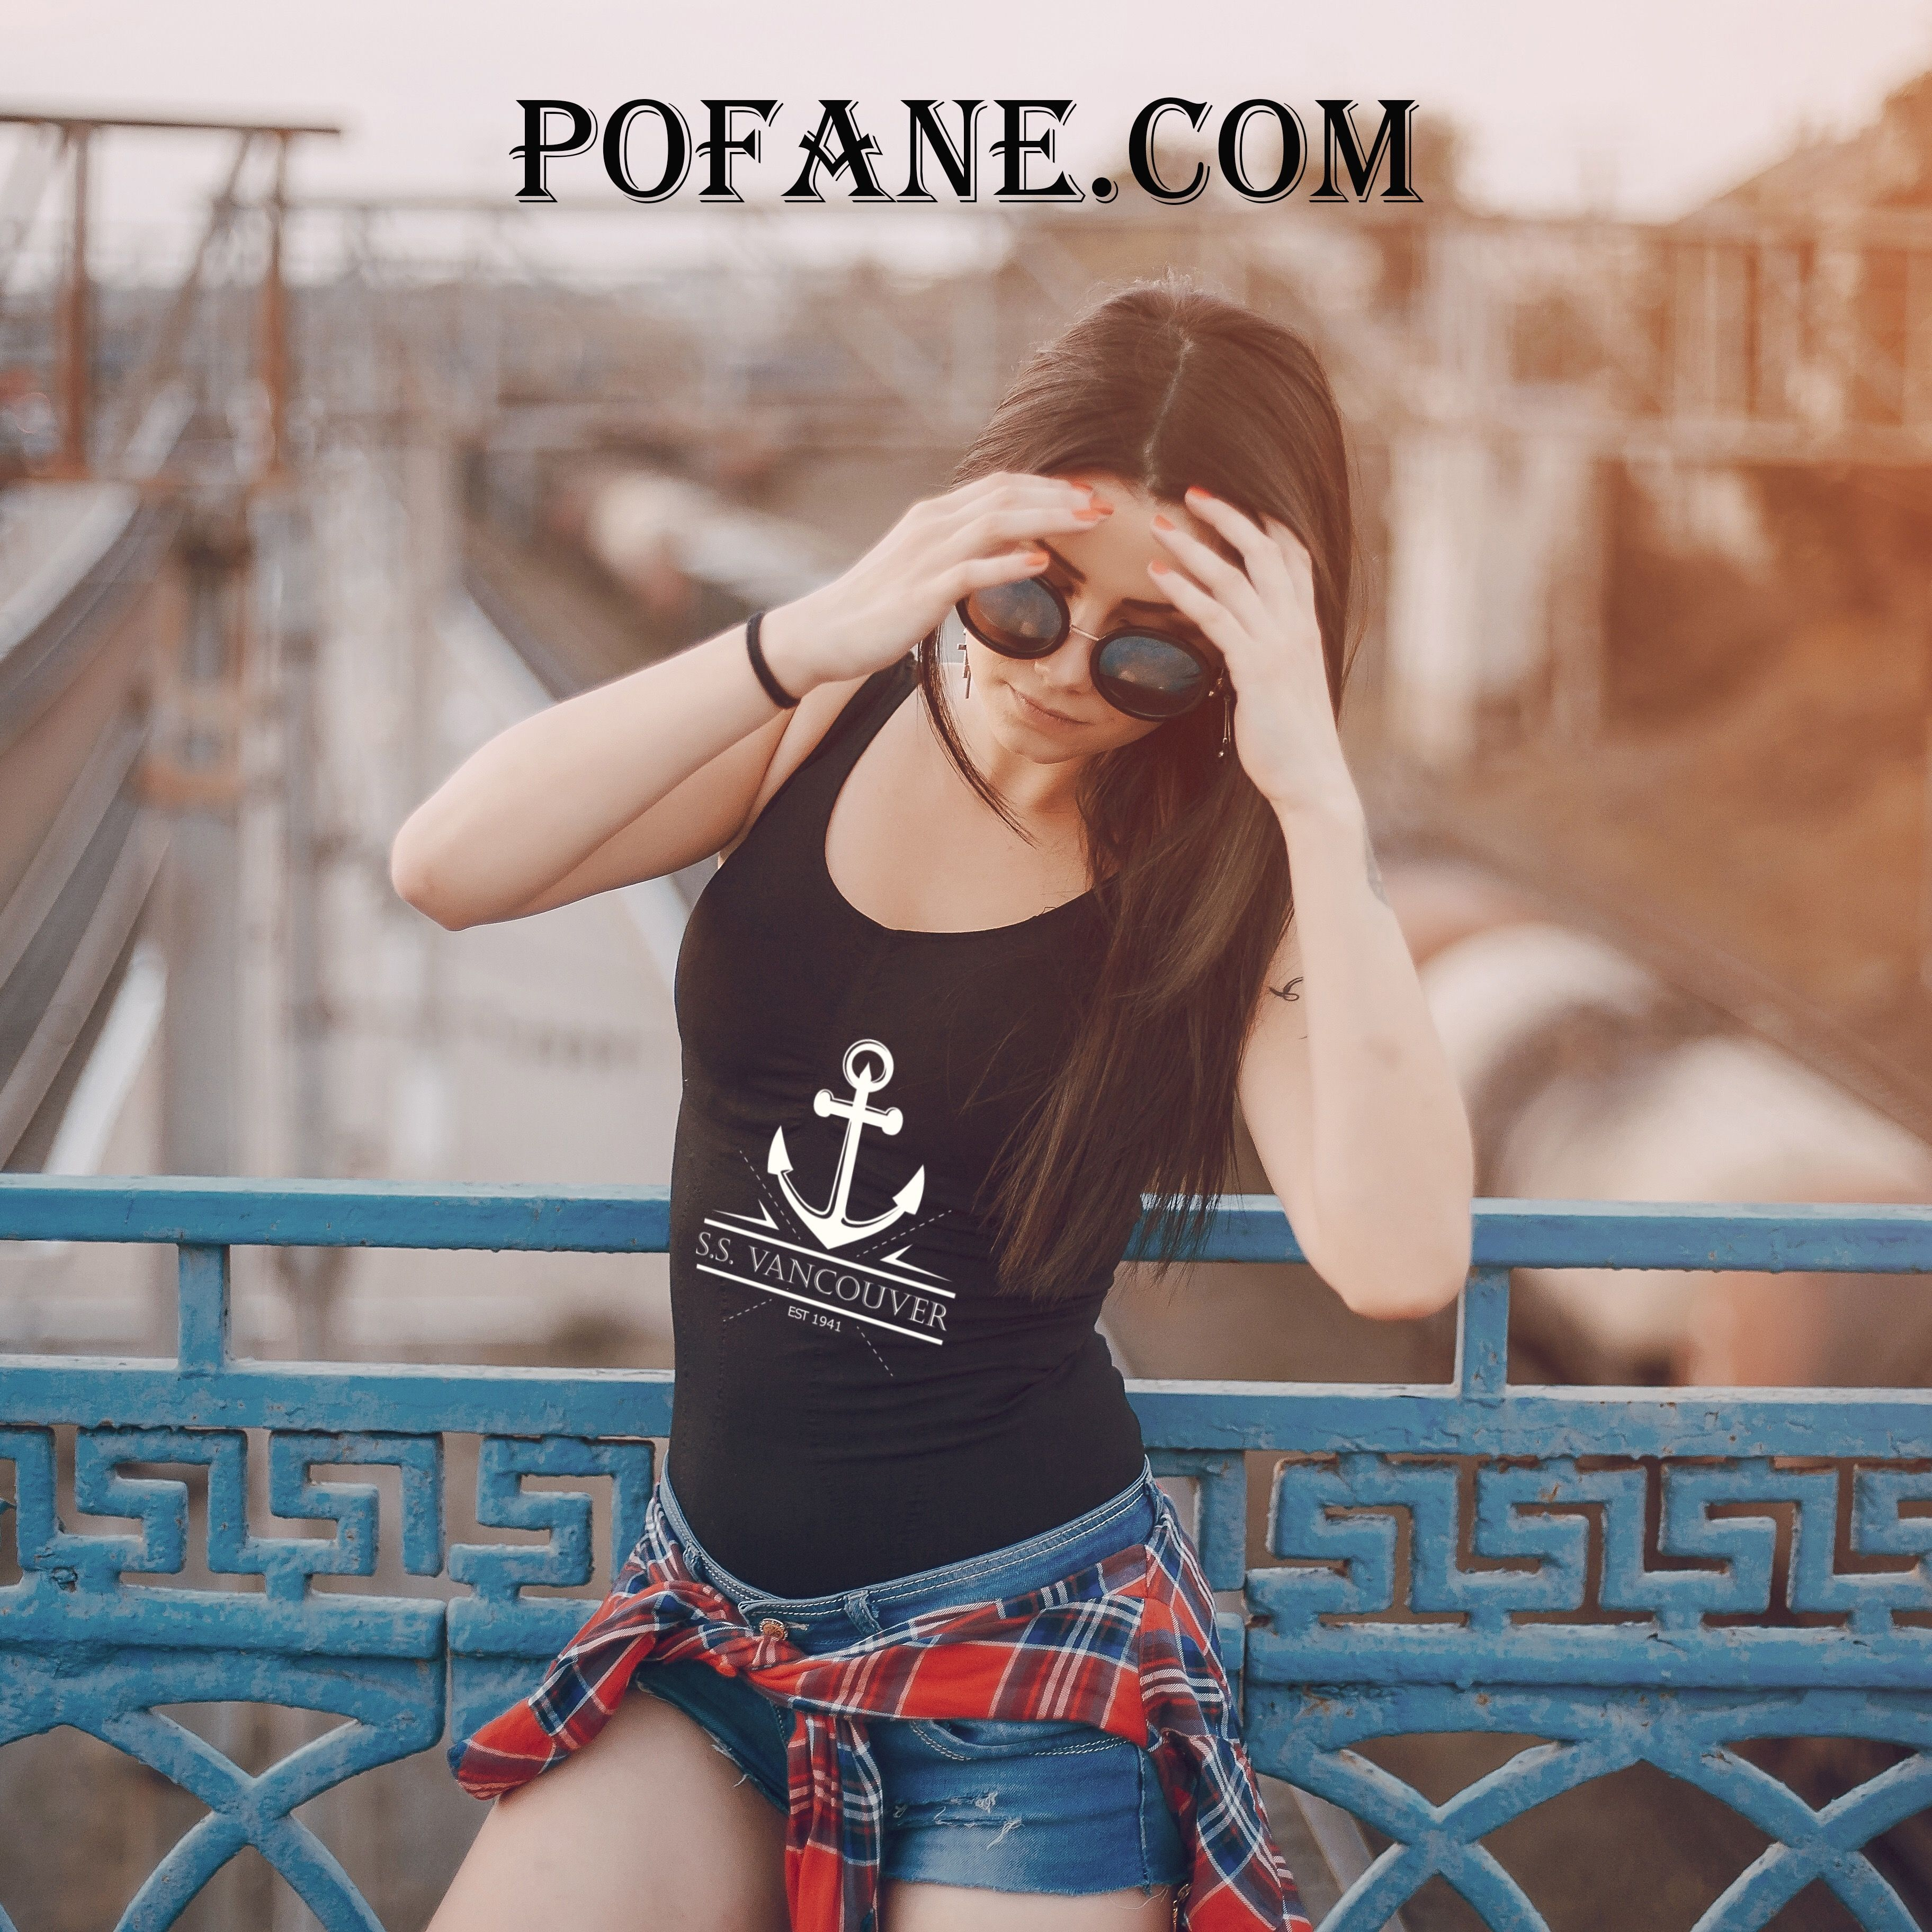 SS Vancouver tank top anchor clothing